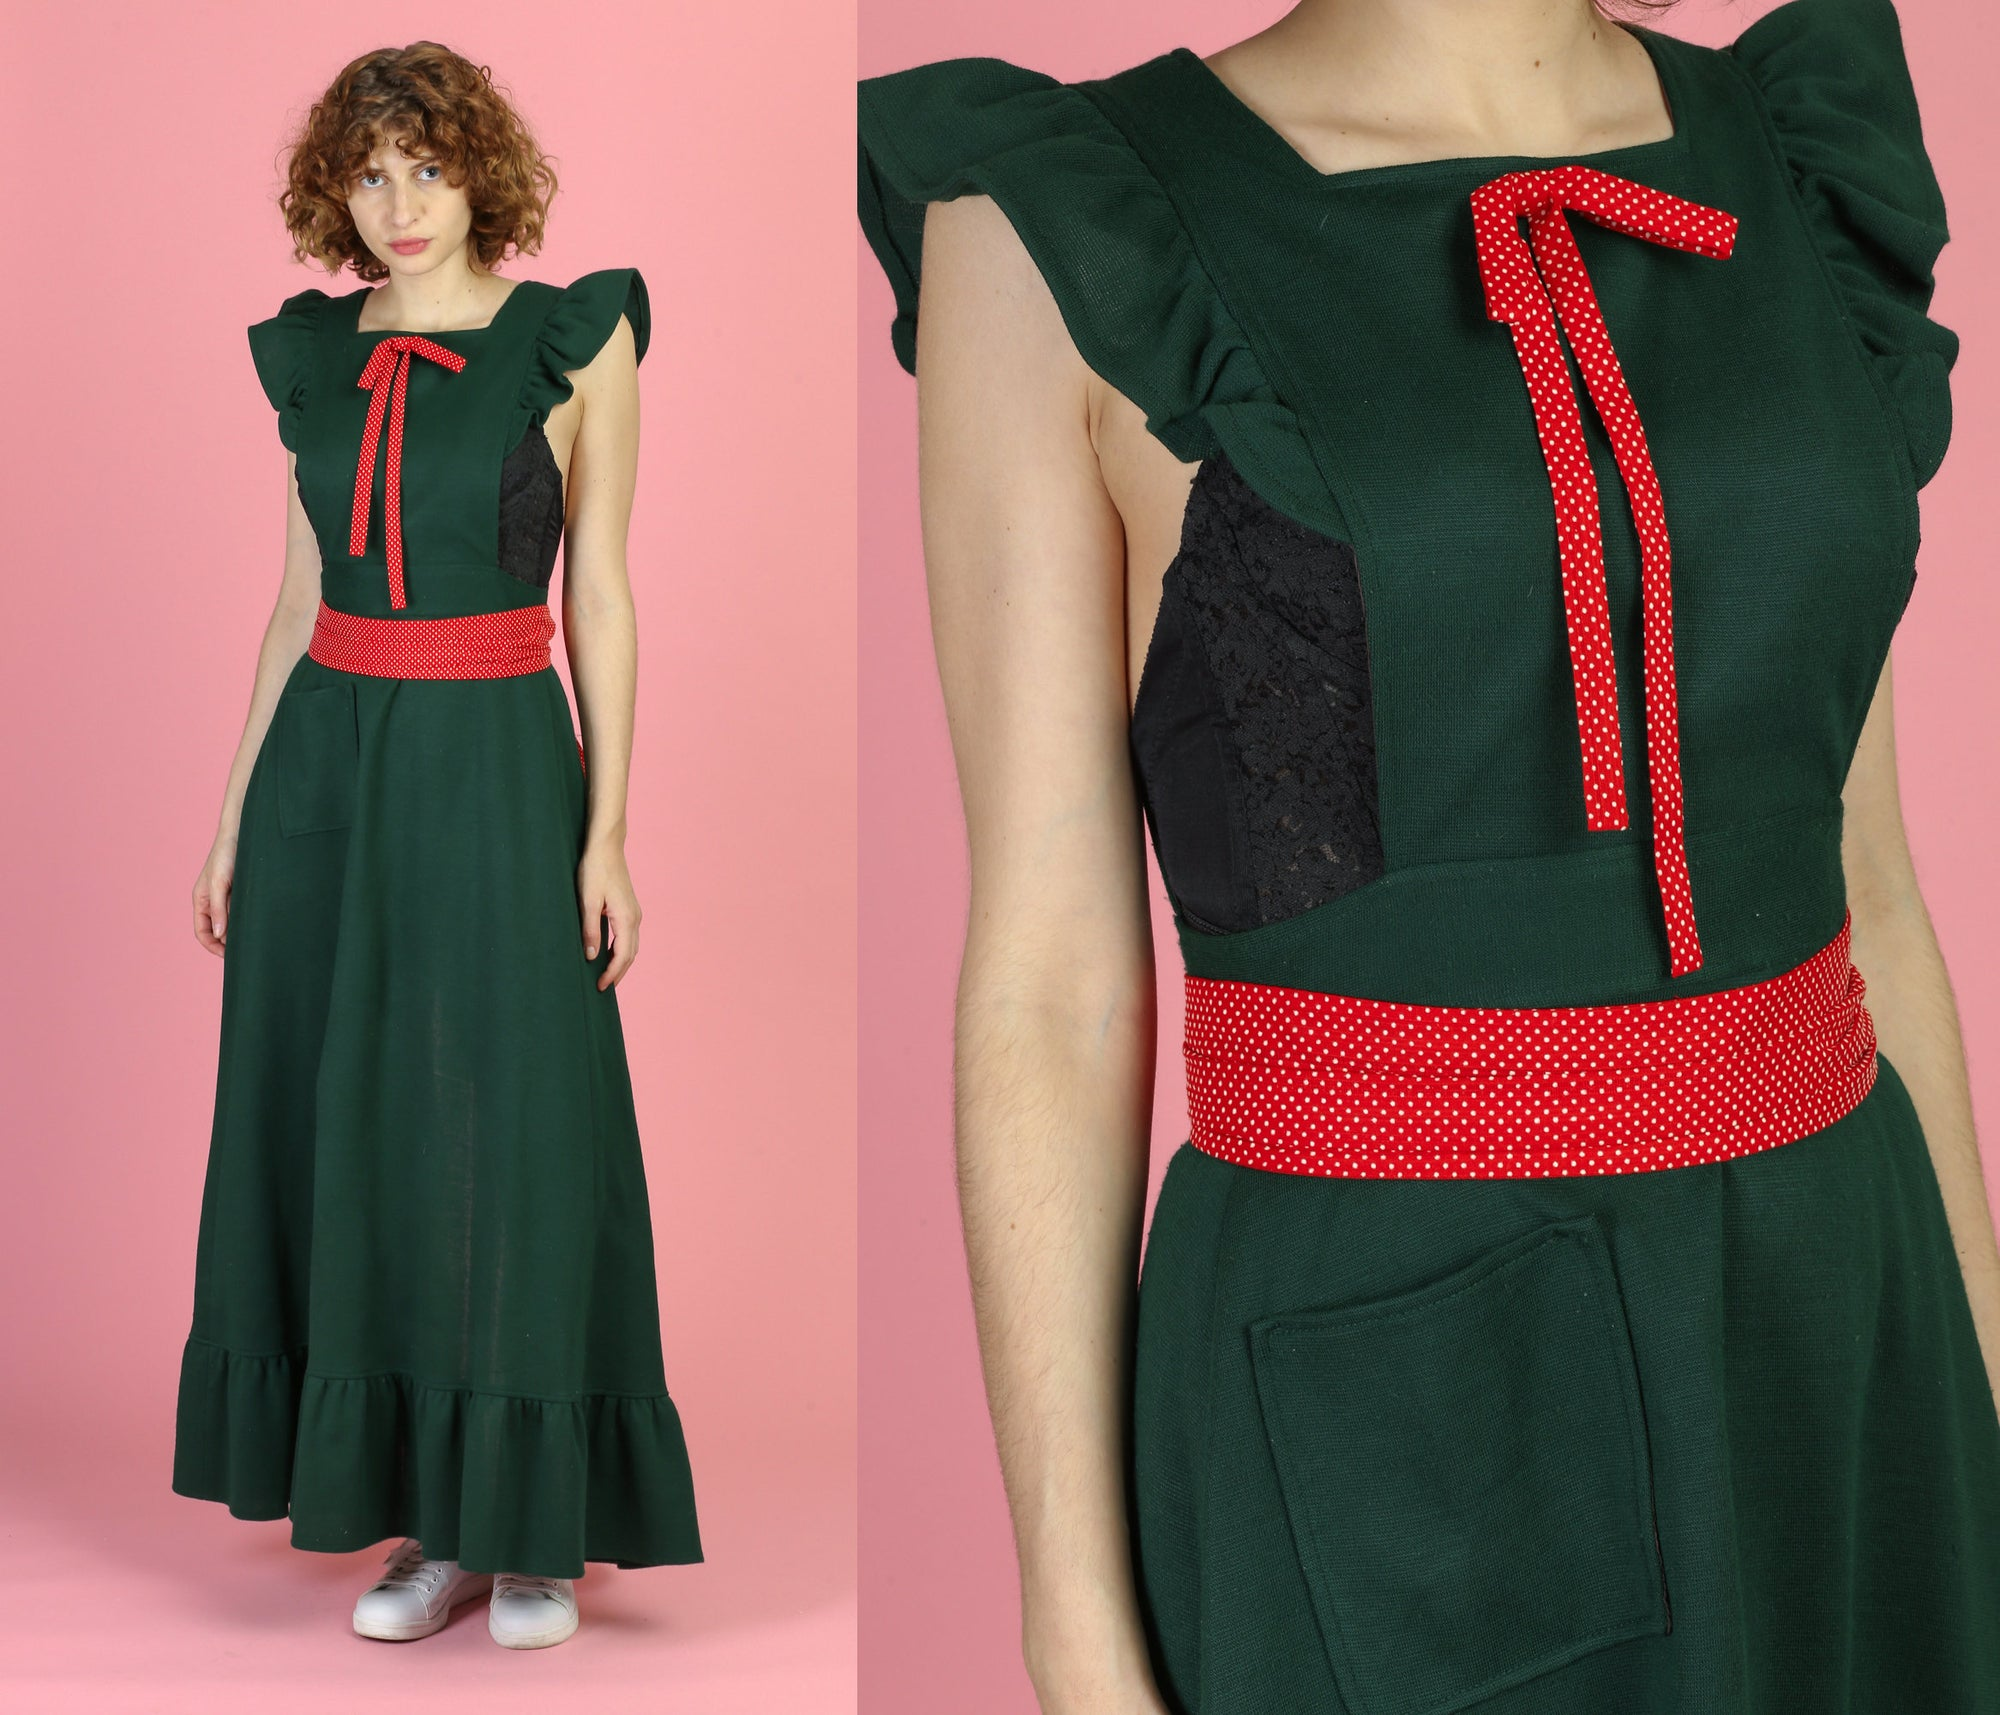 Vintage 60s Green & Red Holiday Hostess Apron - One Size